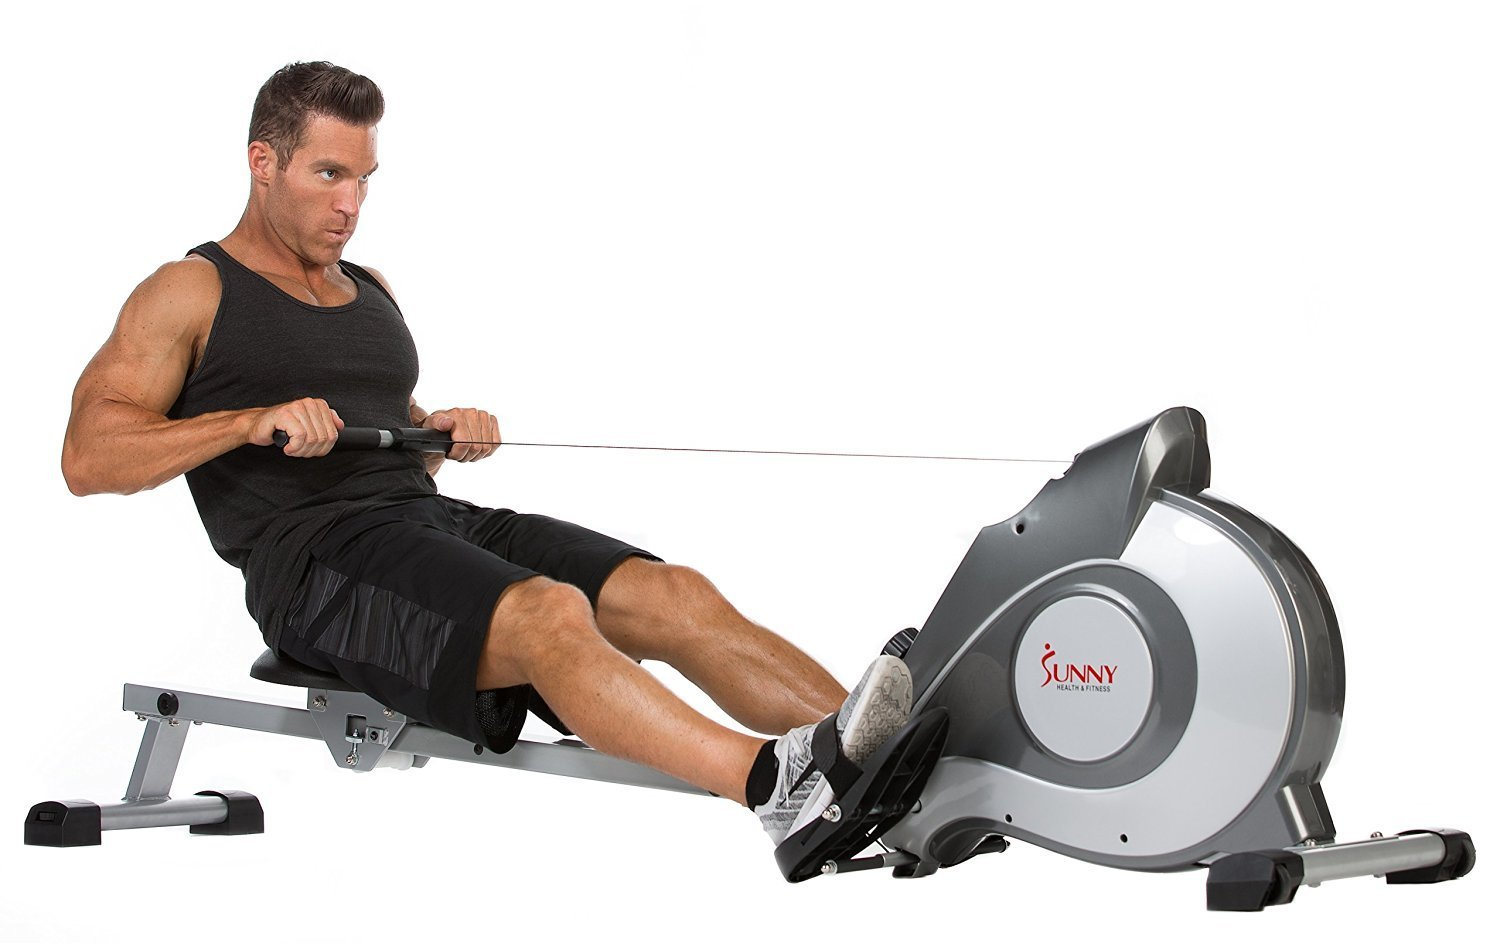 Deluxe Magnetic Rowing Machine Body Tonner Fitness Cardio Gym Training Workout